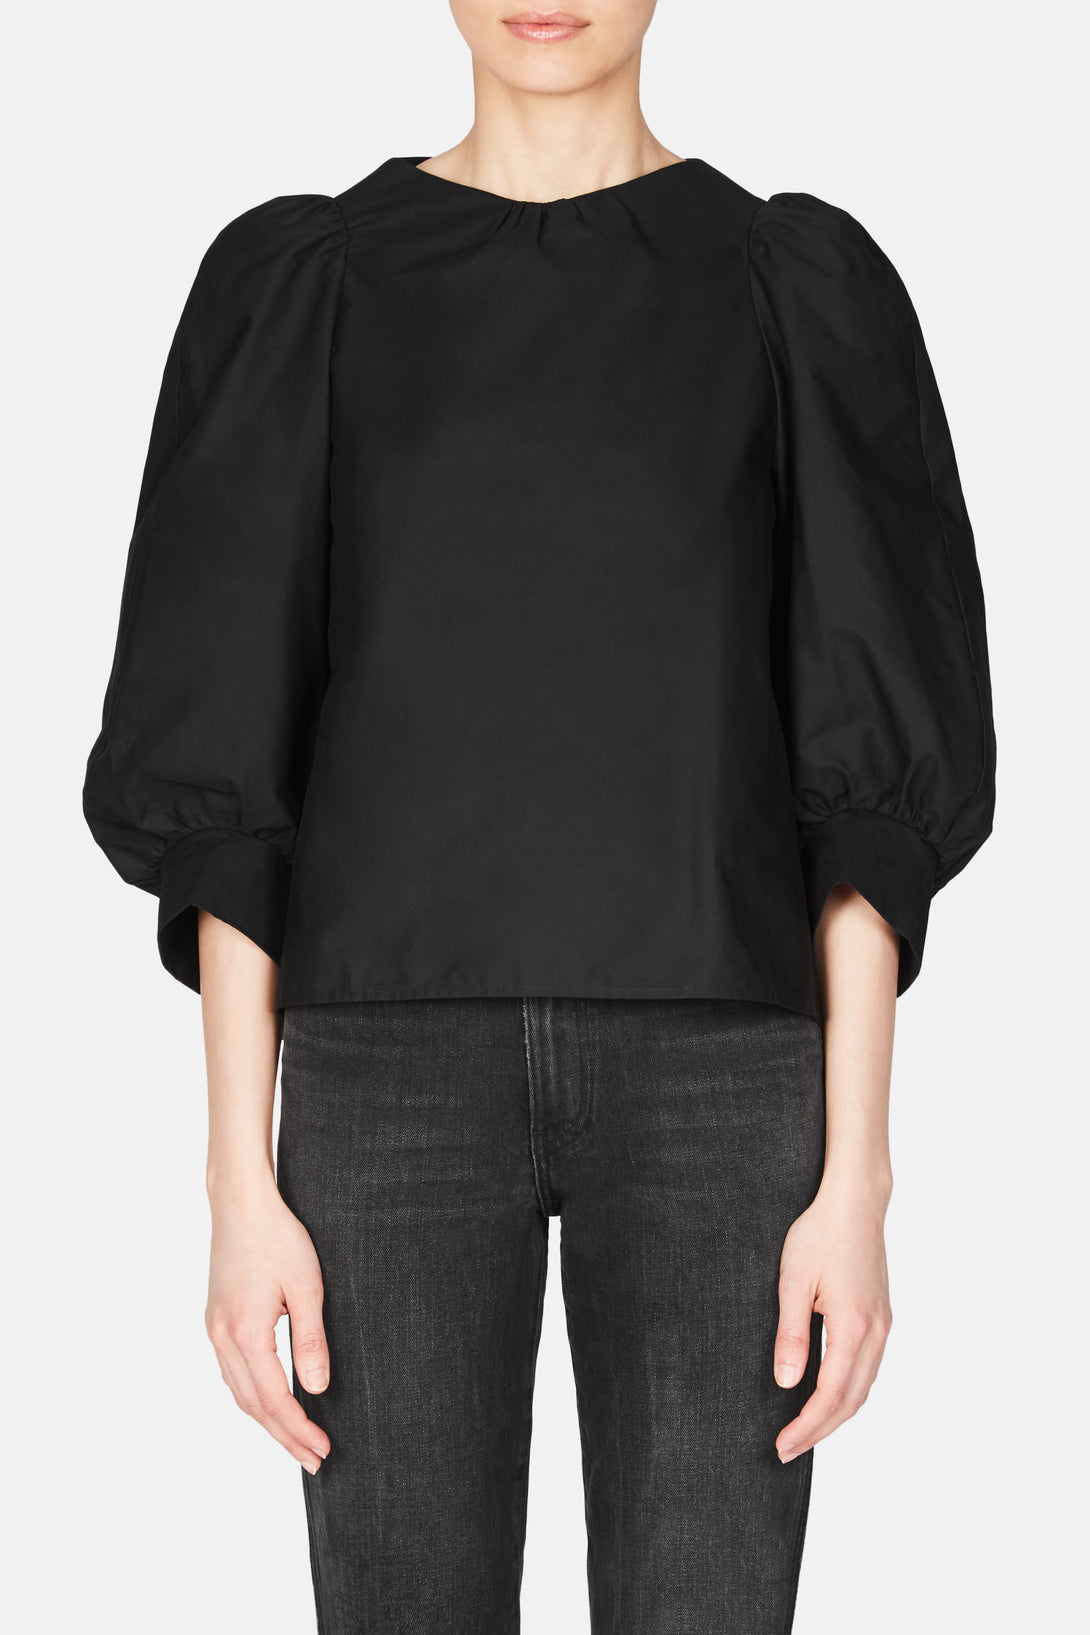 Florentine Blouse - Black